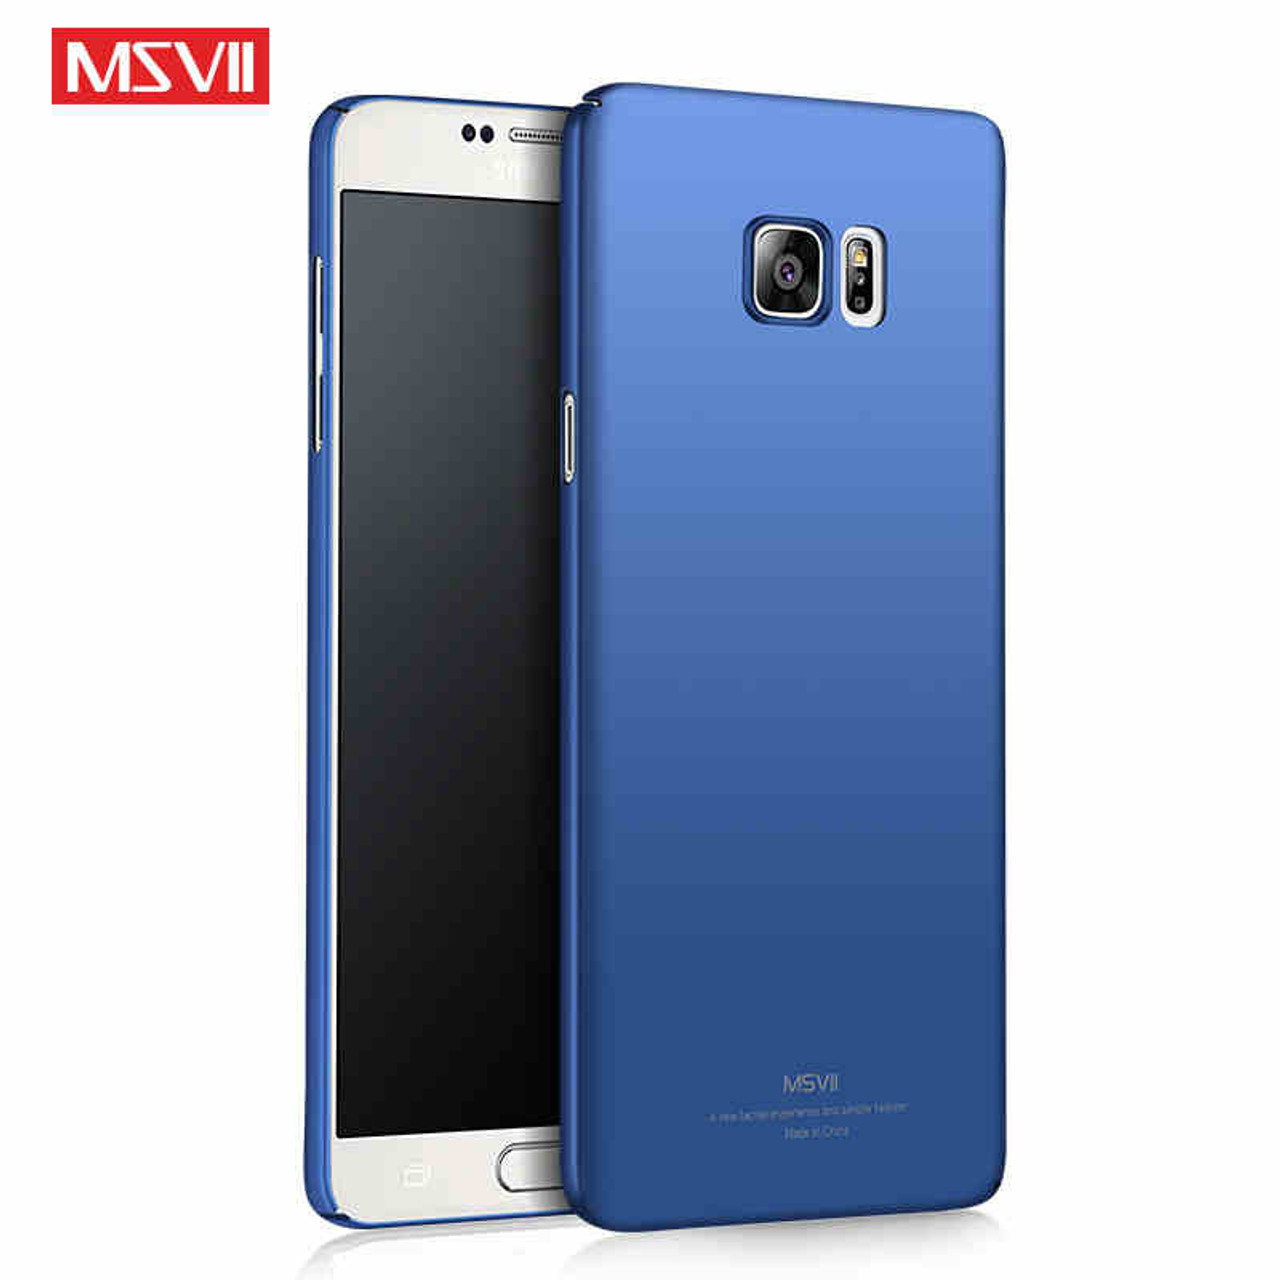 outlet store 41741 4c81e For Samsung Galaxy Note 5 Case Cover Ring Metal Car Magnetic Holder Slim  Hard PC Back Coque For Samsung Note5 Msvii Phone Cases